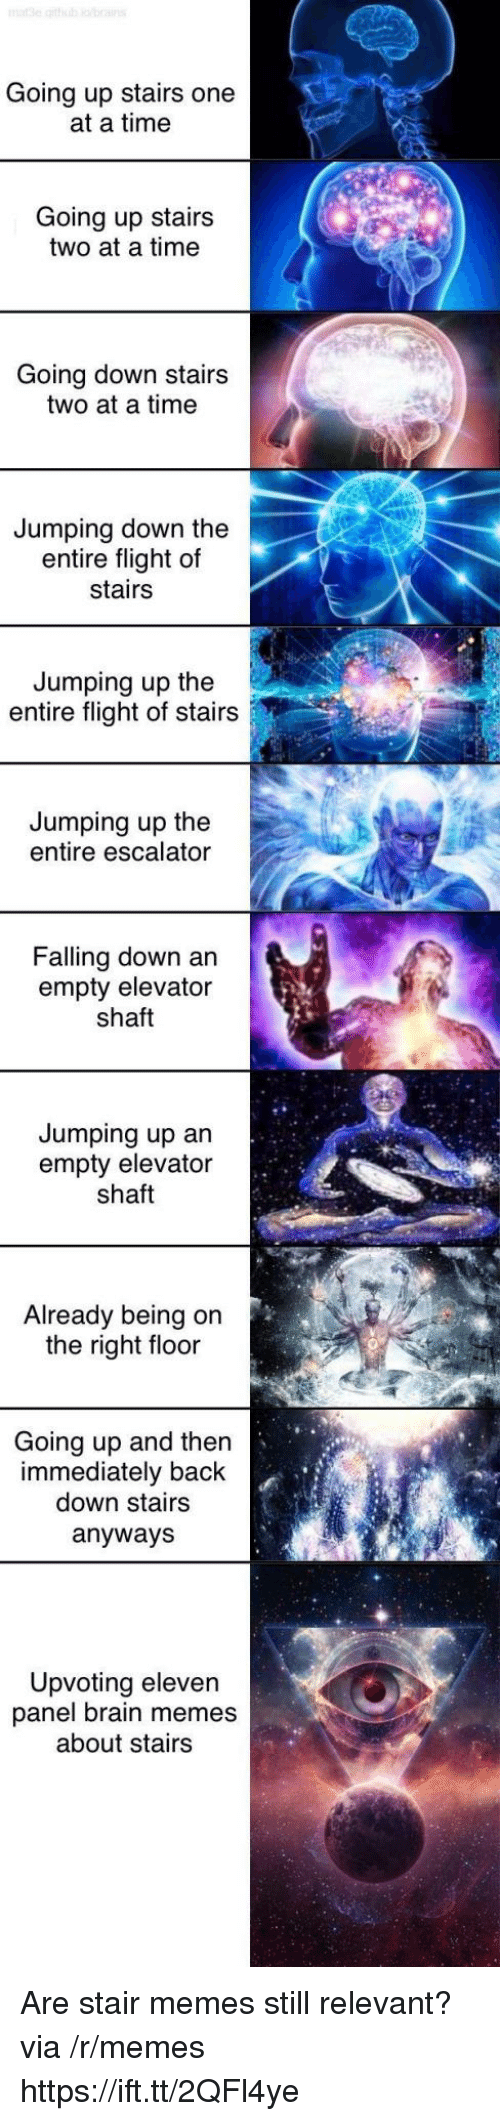 shaft: Going up stairs one  at a time  Going up stairs  two at a time  Going down stairs  two at a time  Jumping down the  entire flight of  stairs  Jumping up the  entire flight of stairs  Jumping up the  entire escalator  Falling down an  empty elevator  shaft  Jumping up an  empty elevator  shaft  Already being on  the right floor  Going up and then  immediately back  down stairs  anyways  Upvoting eleven  panel brain memes  about stairs Are stair memes still relevant? via /r/memes https://ift.tt/2QFl4ye